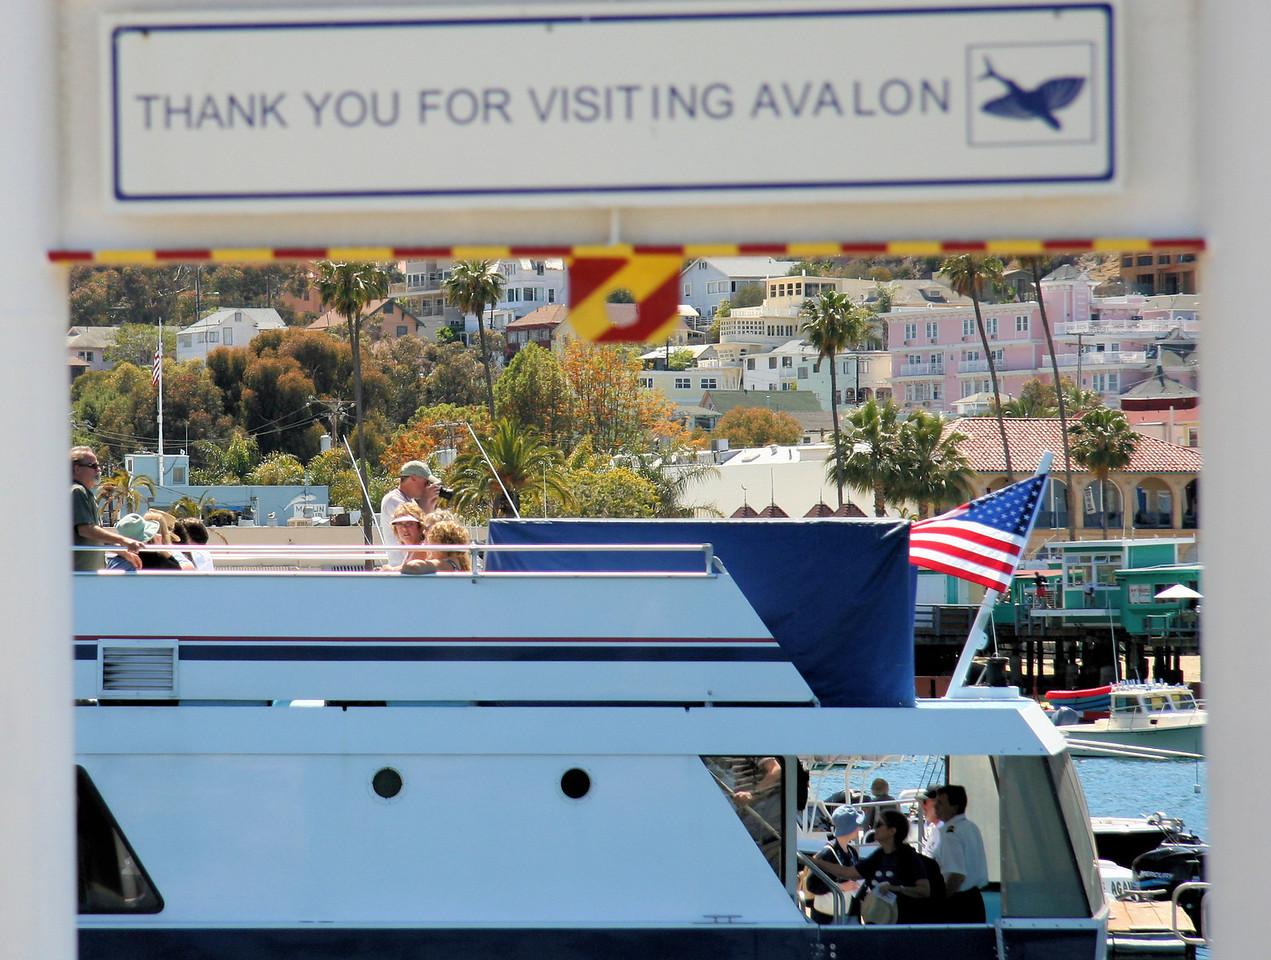 Avalon Thanks Steve and his Guests for Their Gracious Visit